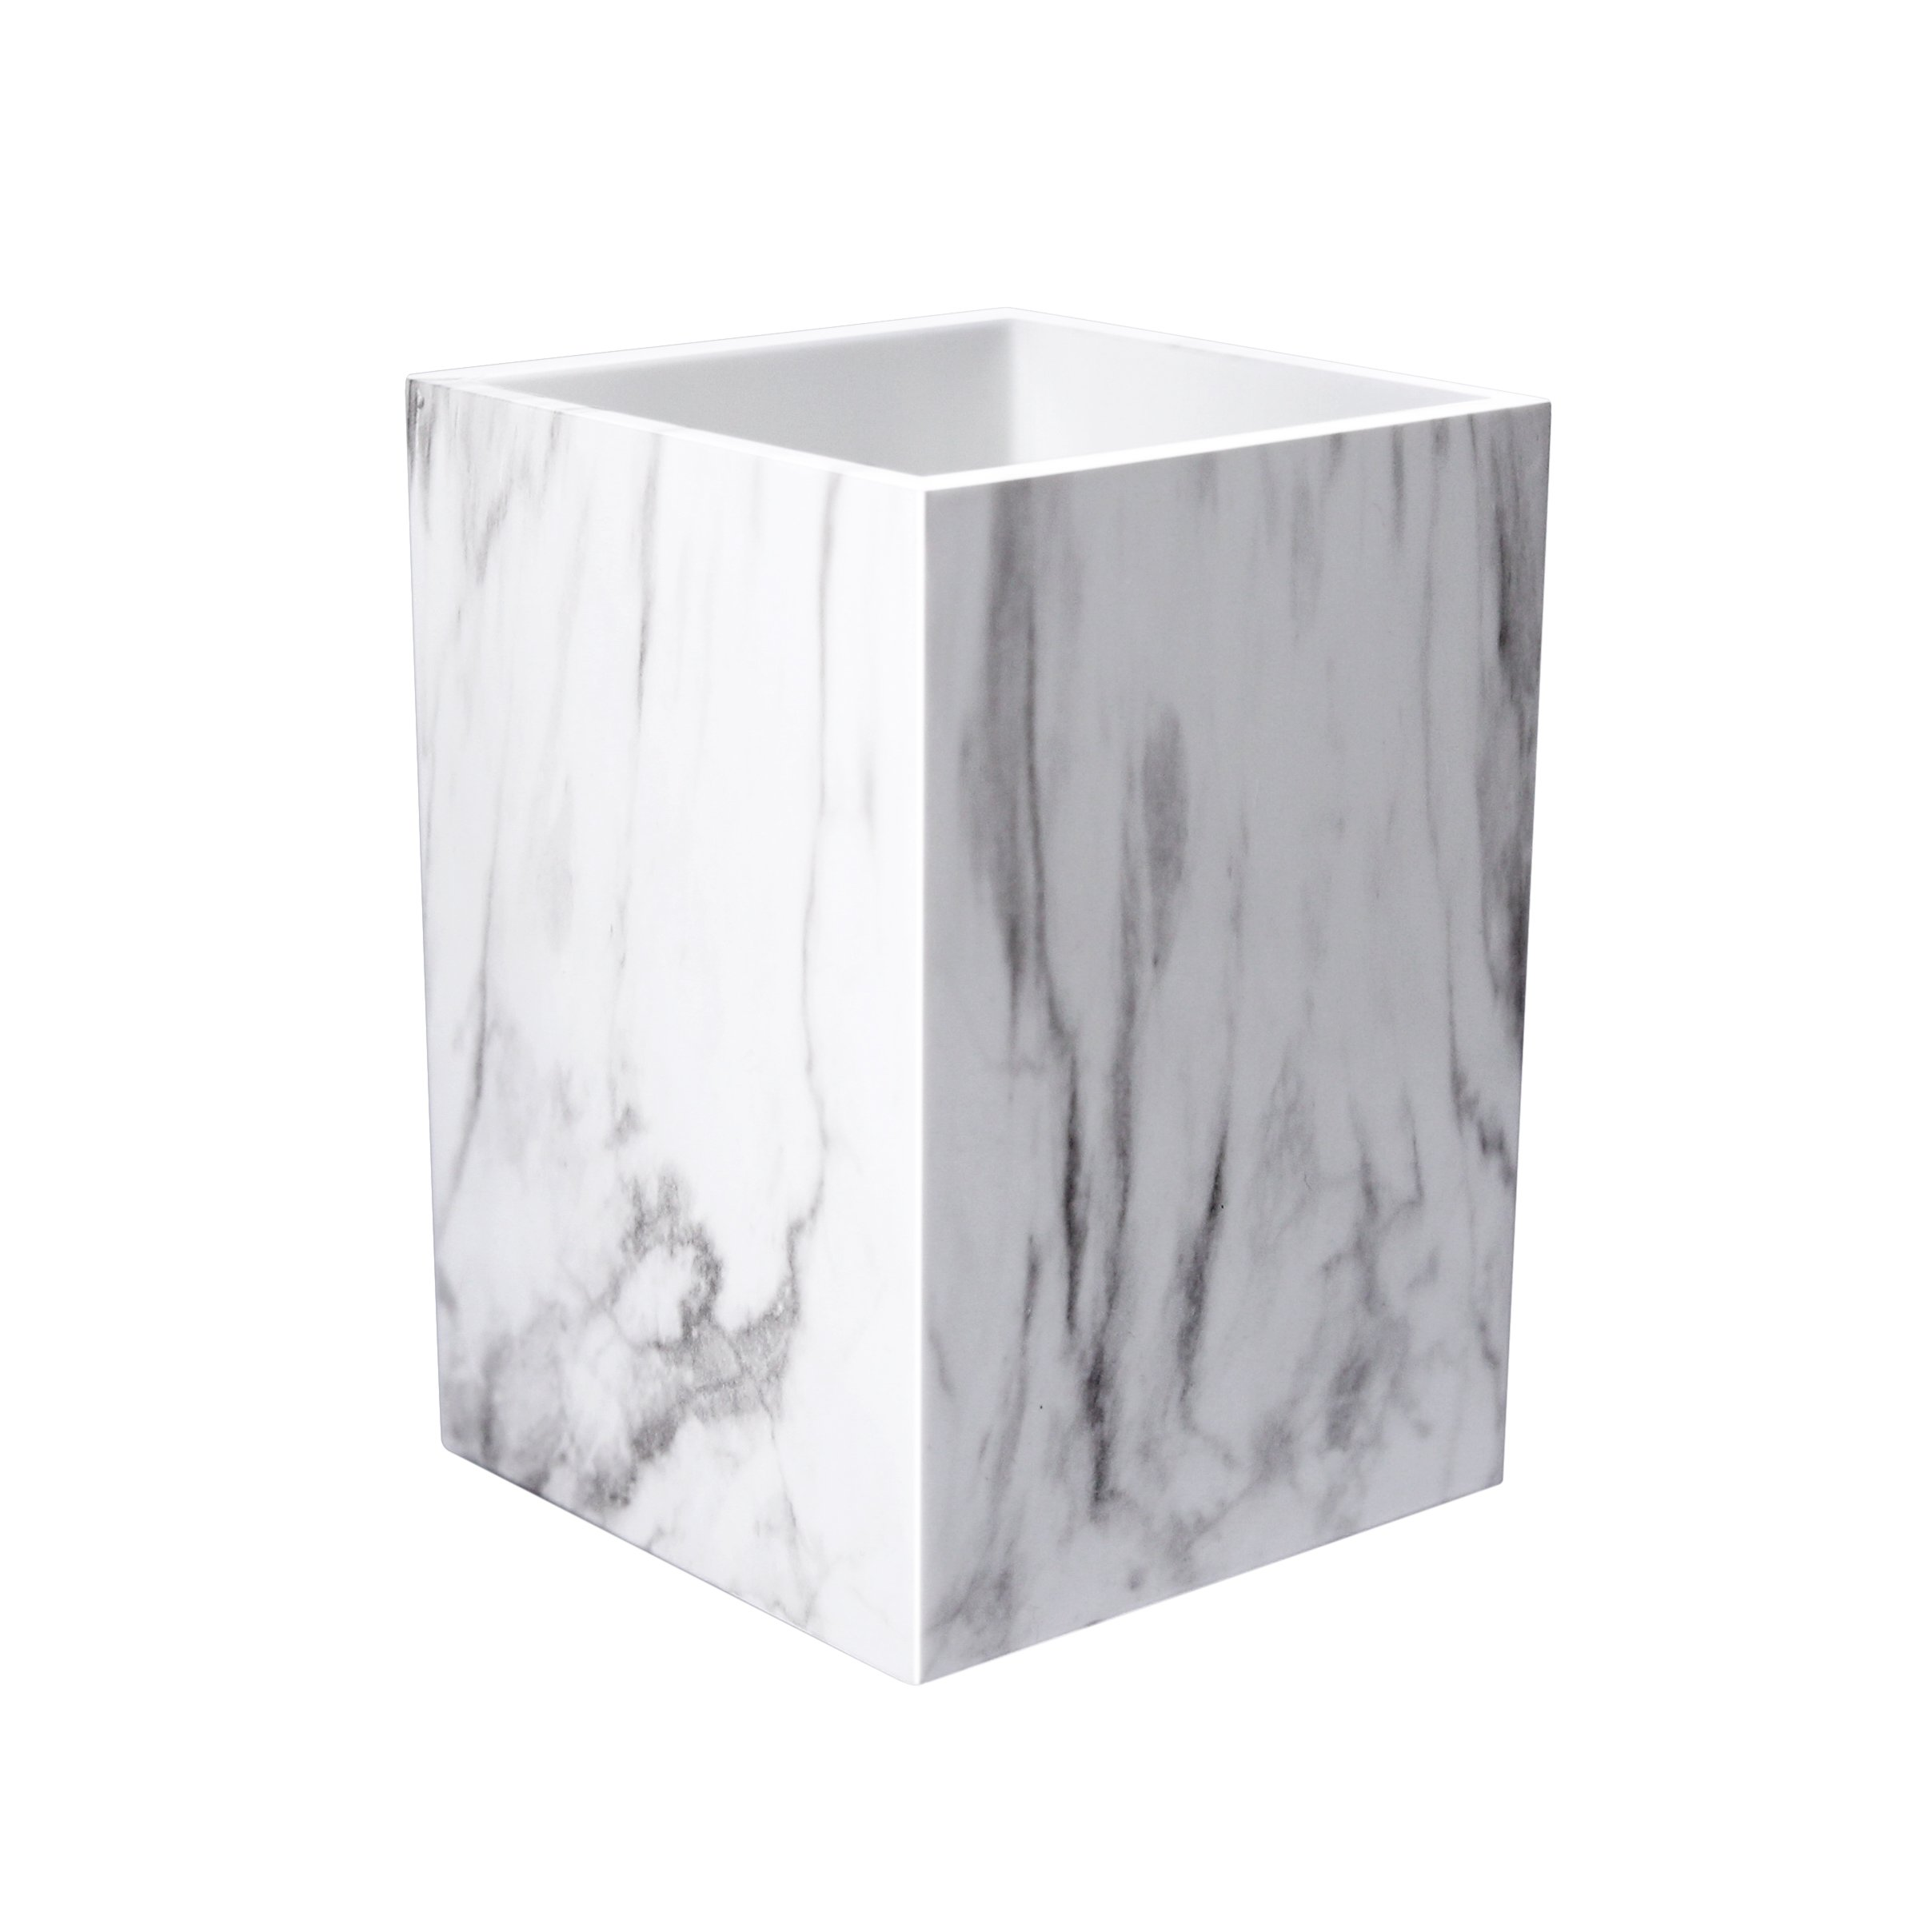 UNIQOOO Marble Print Desk Pen Organizer Pencil Holder Case Box with Modern Design in Elegant Matt Finish- Beautiful Stationery for Daily Use in Office, Classroom, Home, Gift, Flat Lay Photo Idea by UNIQOOO